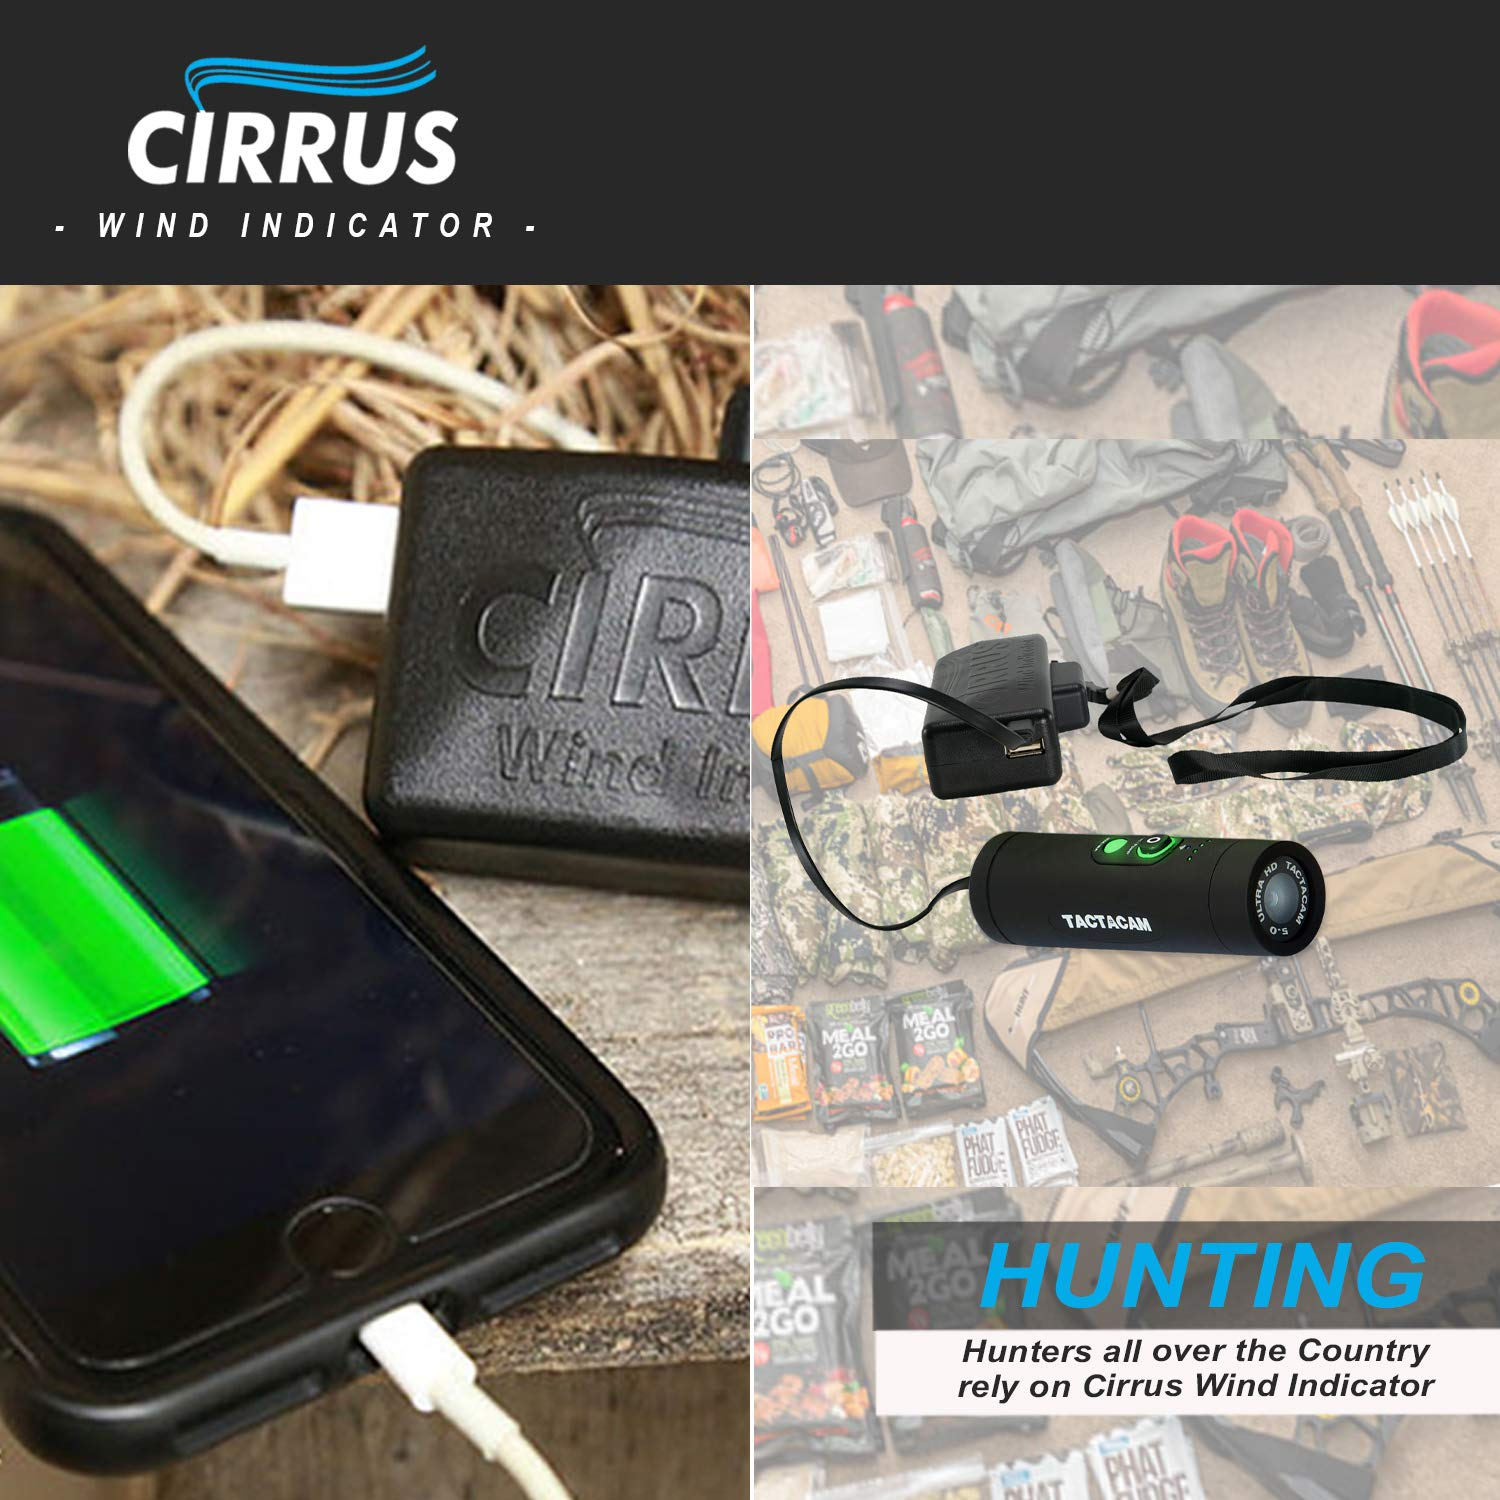 Cirrus Wind Indicator for Hunting - The Perfect Wind Checker Alternative to Messy Powder by Cirrus (Image #6)